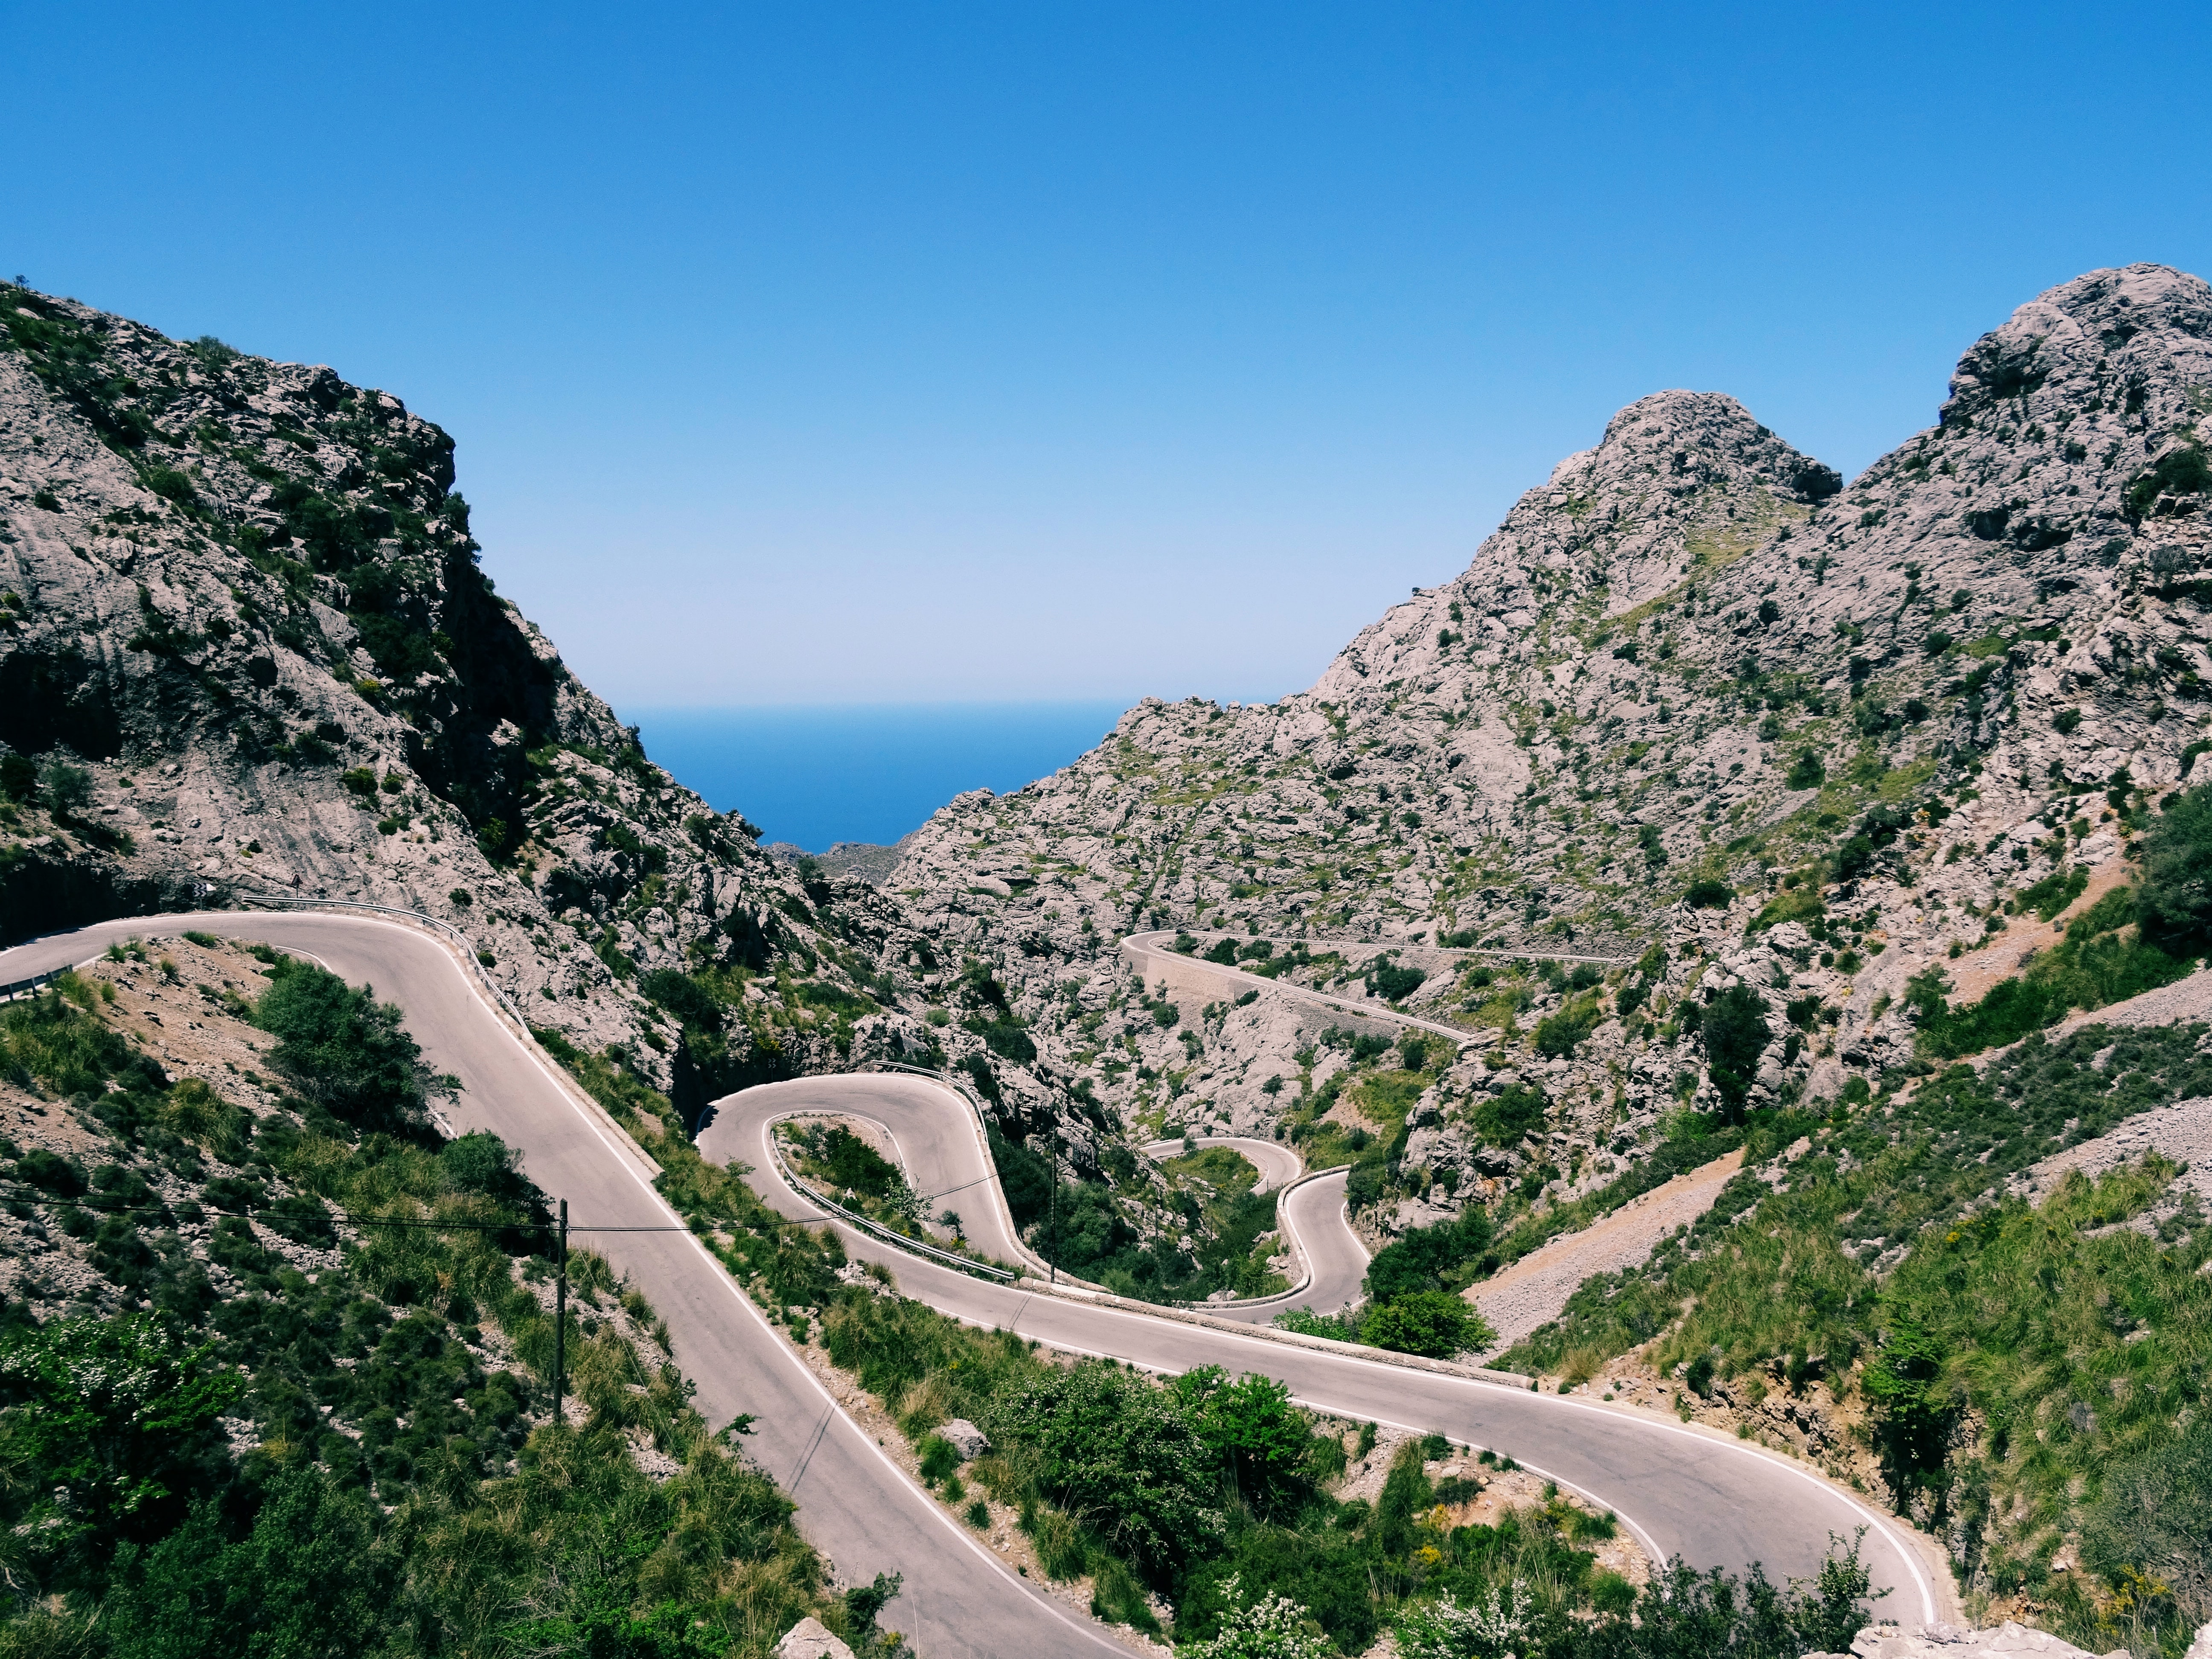 A narrow road twisting along the slopes of shrub-covered mountains